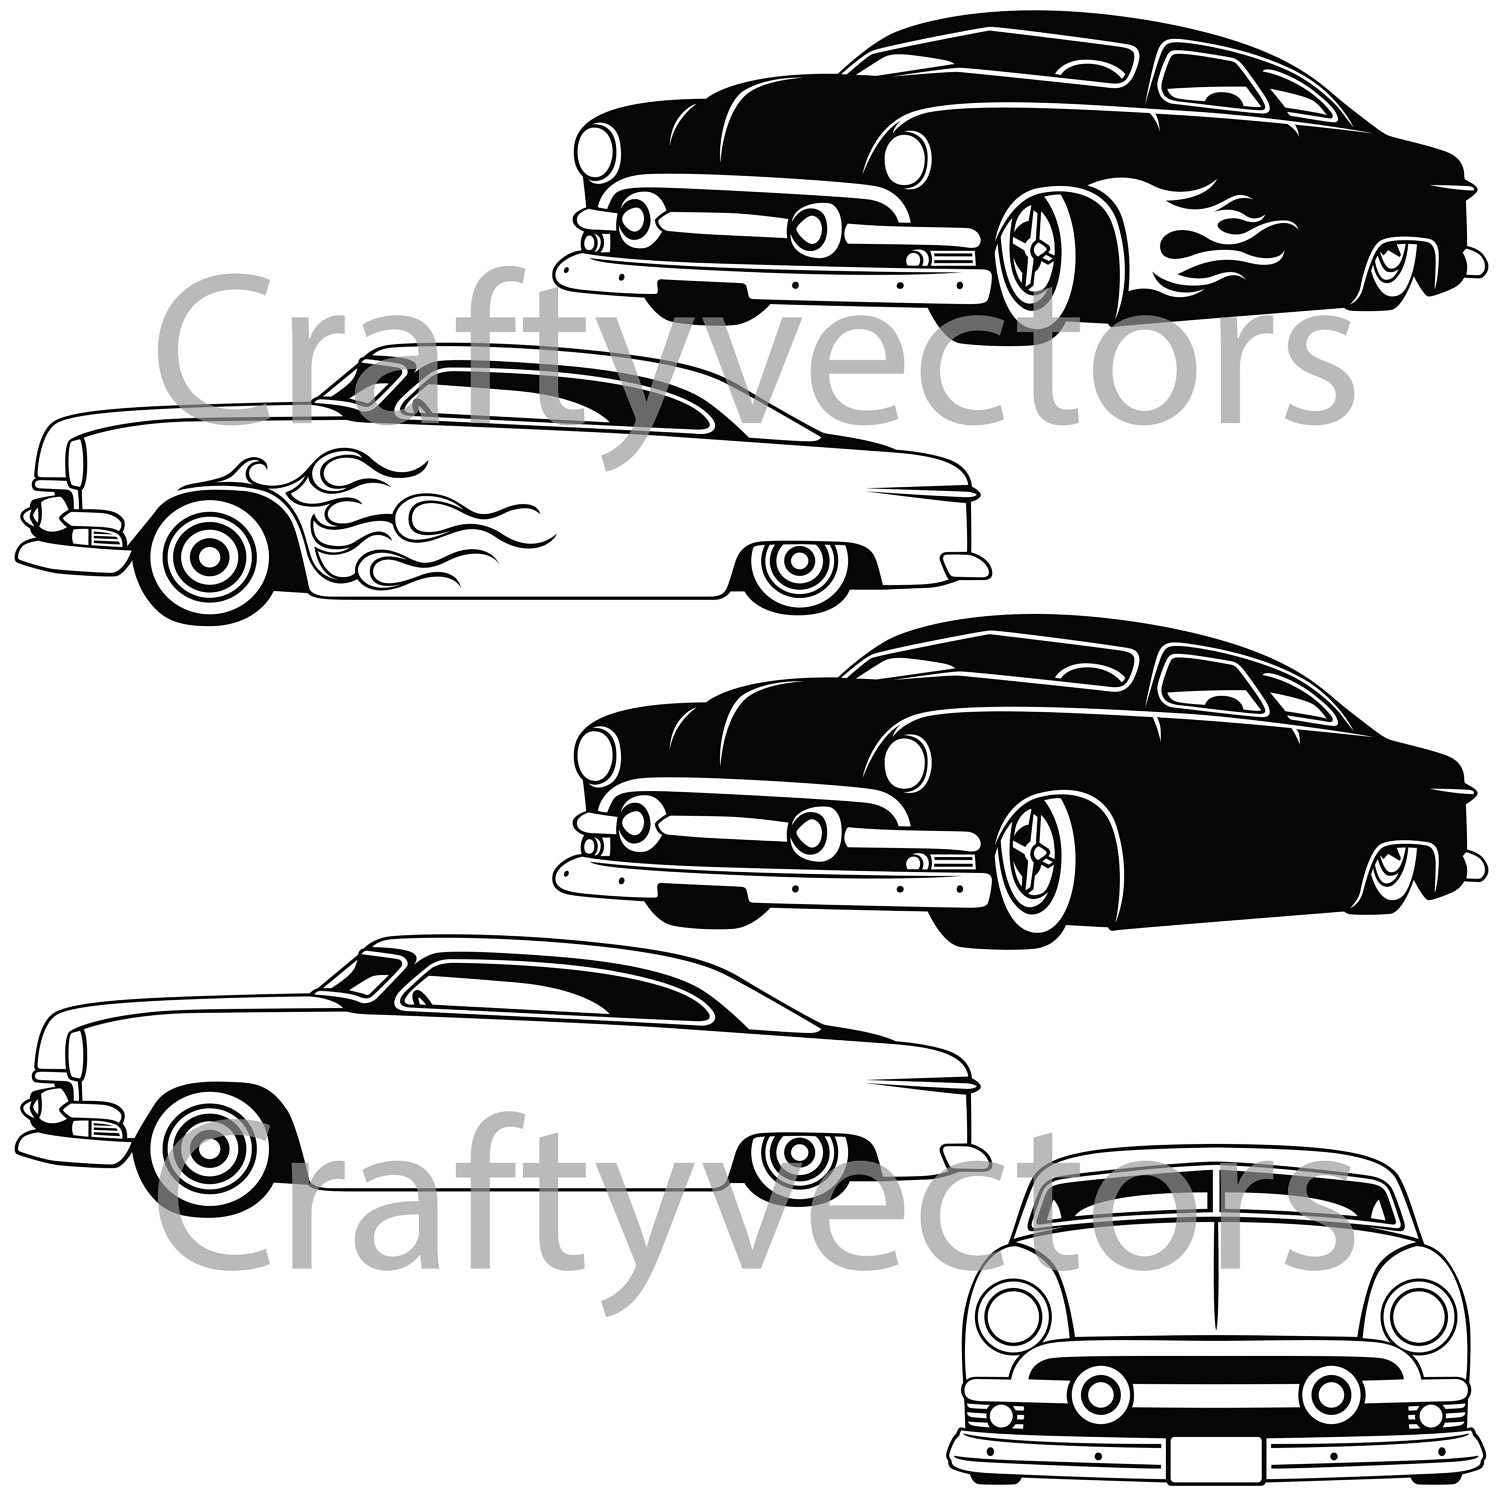 ford shoe box chop top 1951 from craftyvectors on etsy studio